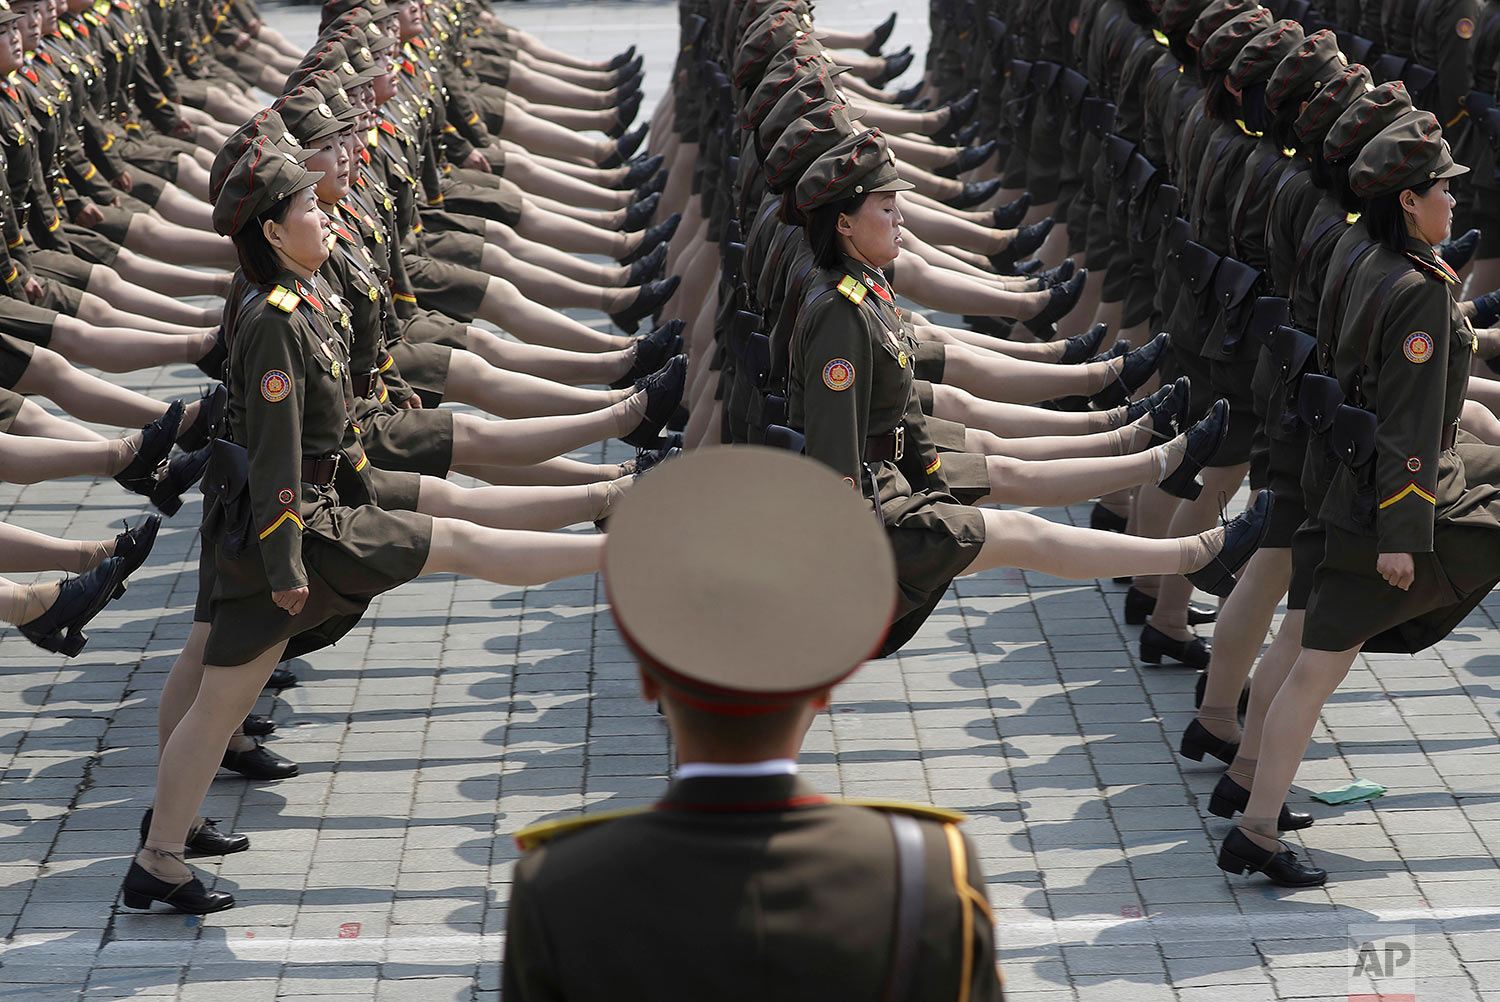 Soldiers take part in a military parade on April 15, 2017, in Pyongyang, North Korea, to celebrate the 105th anniversary of the birth of Kim Il Sung, the country's late founder and grandfather of current ruler Kim Jong Un. (AP Photo/Wong Maye-E)